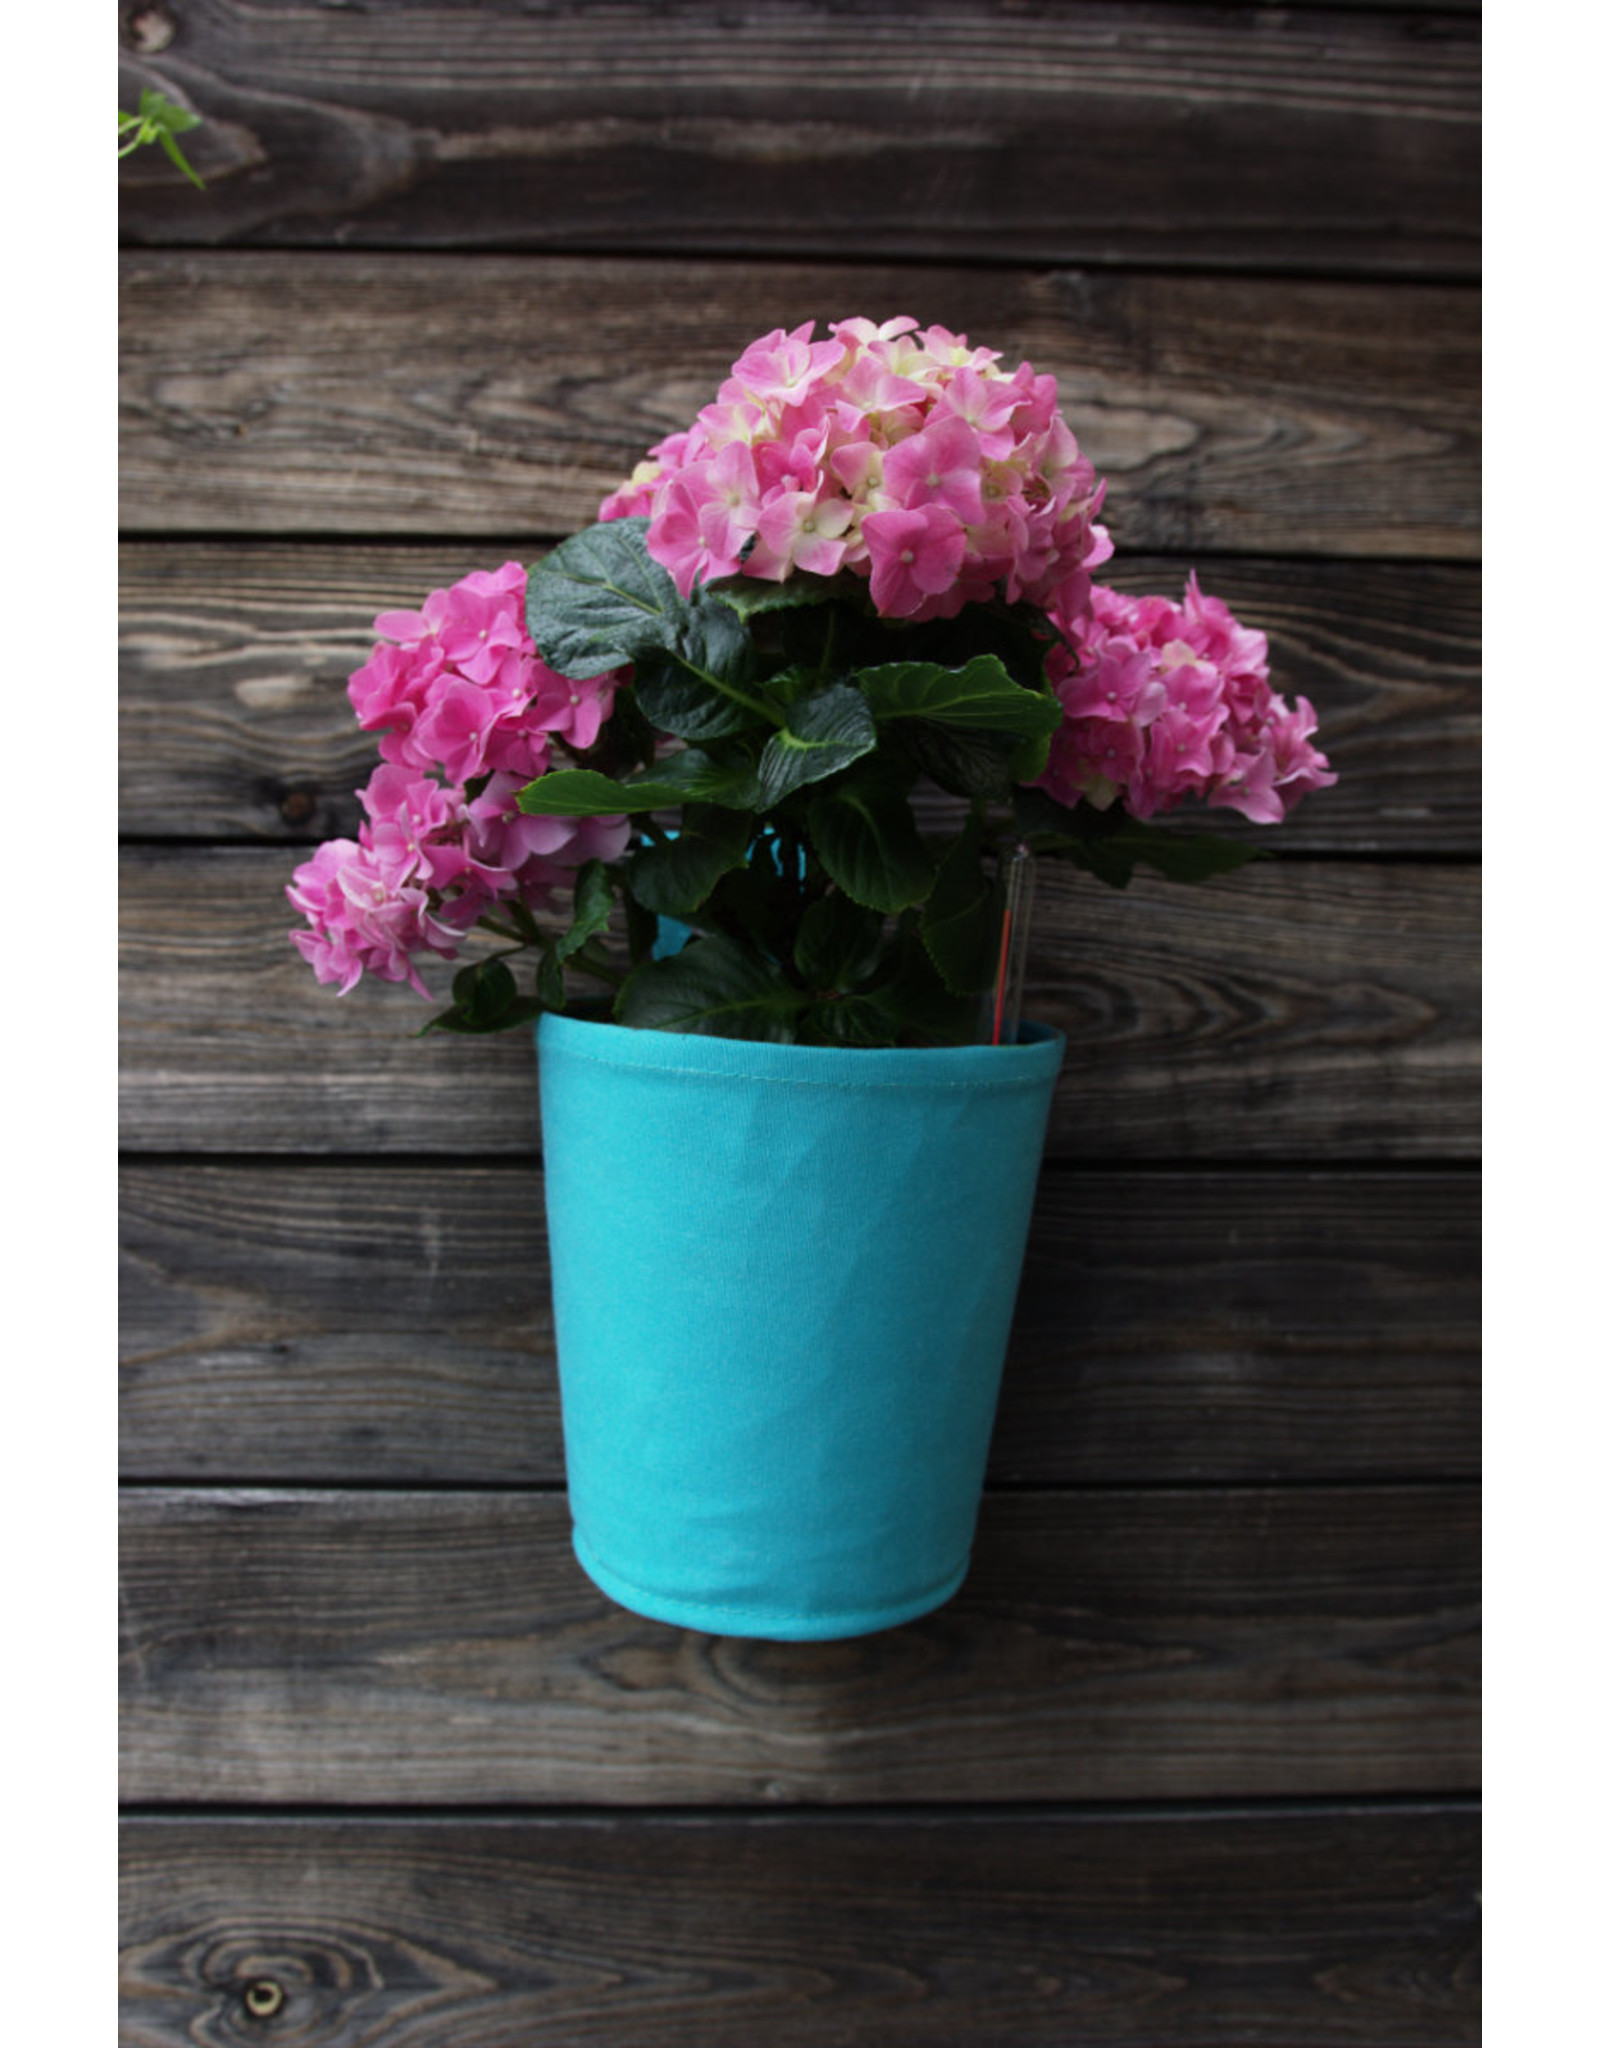 Blooming Walls The green pot Spring Turquoise